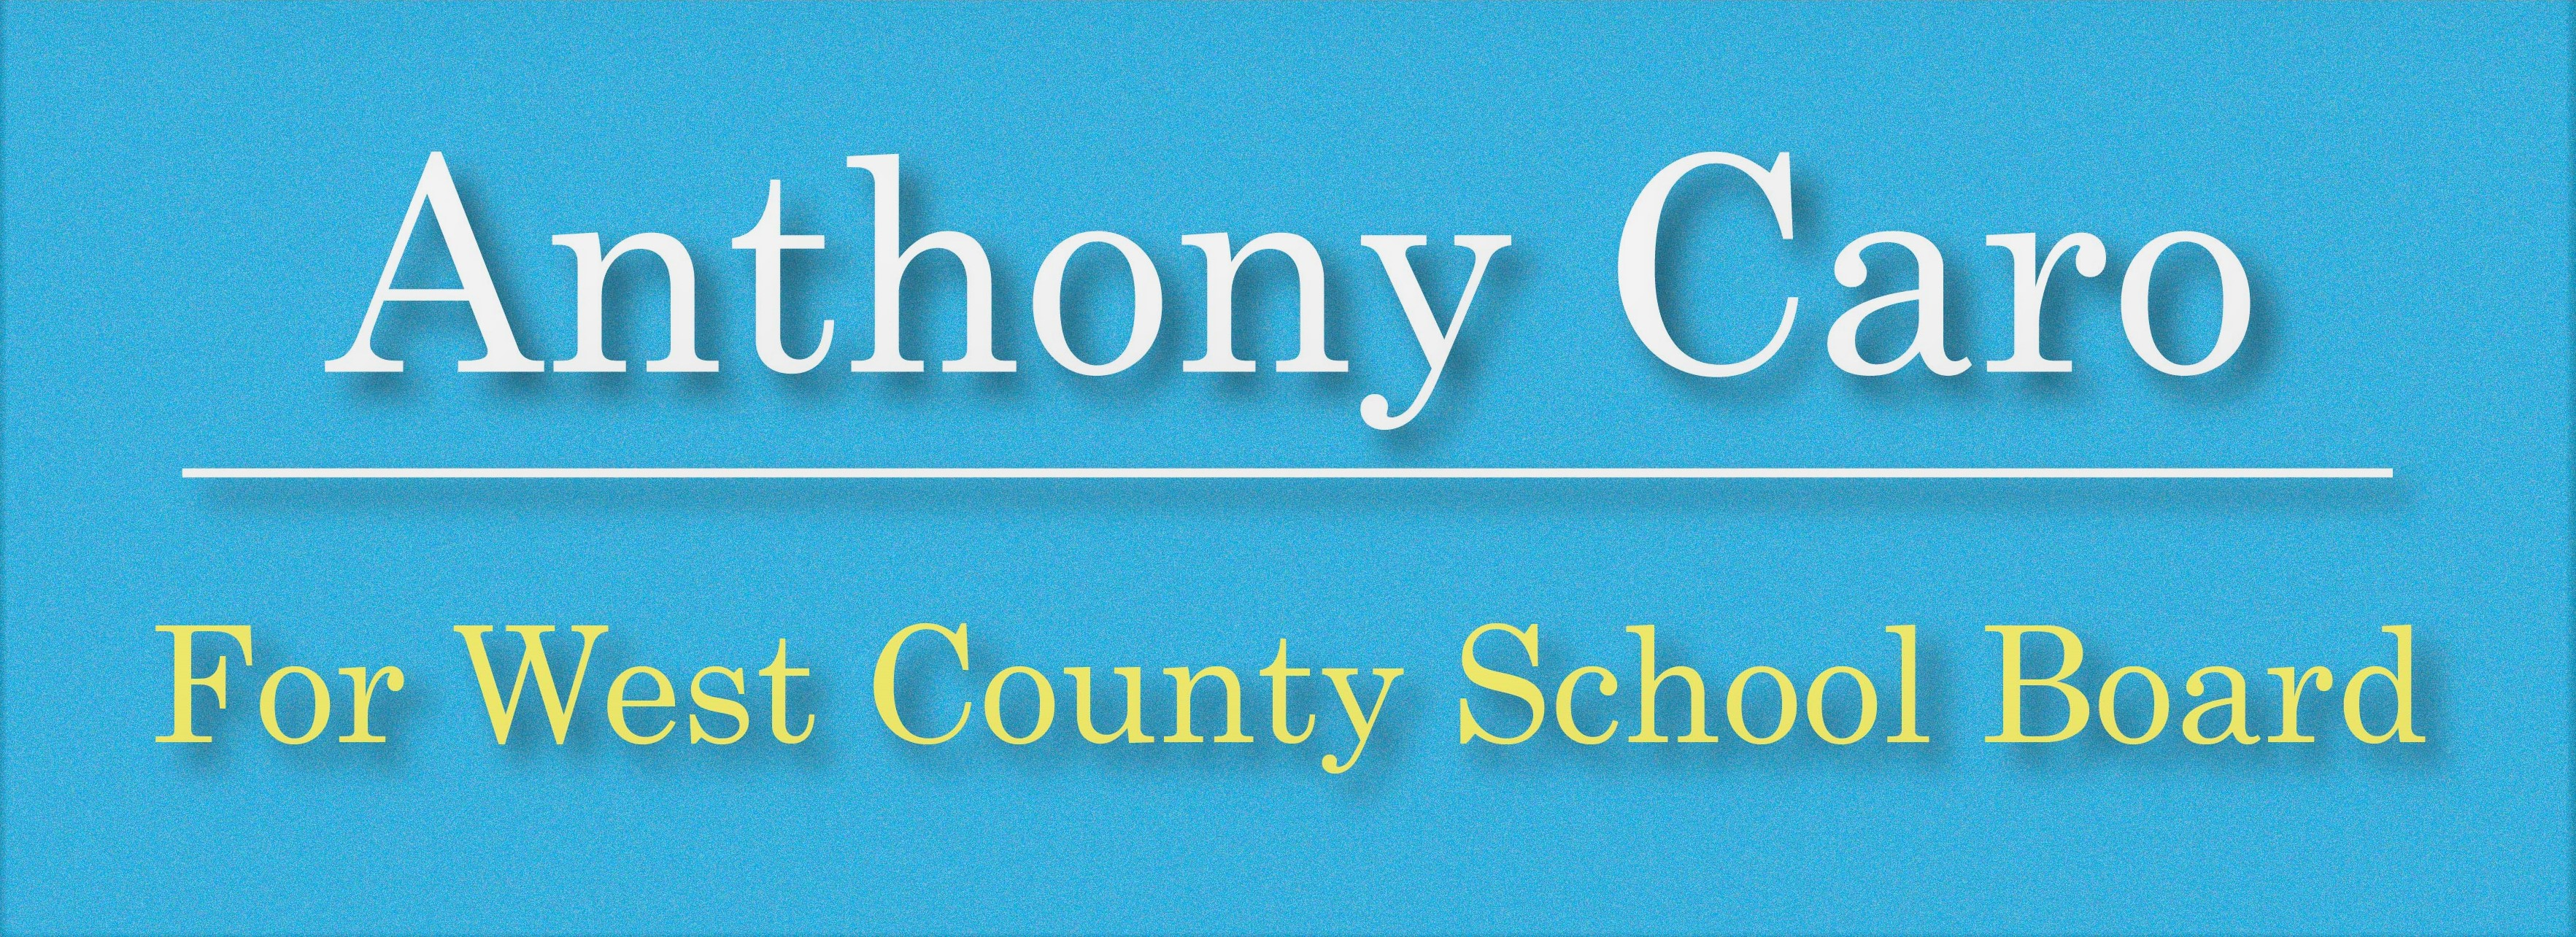 Anthony Caro for School Board